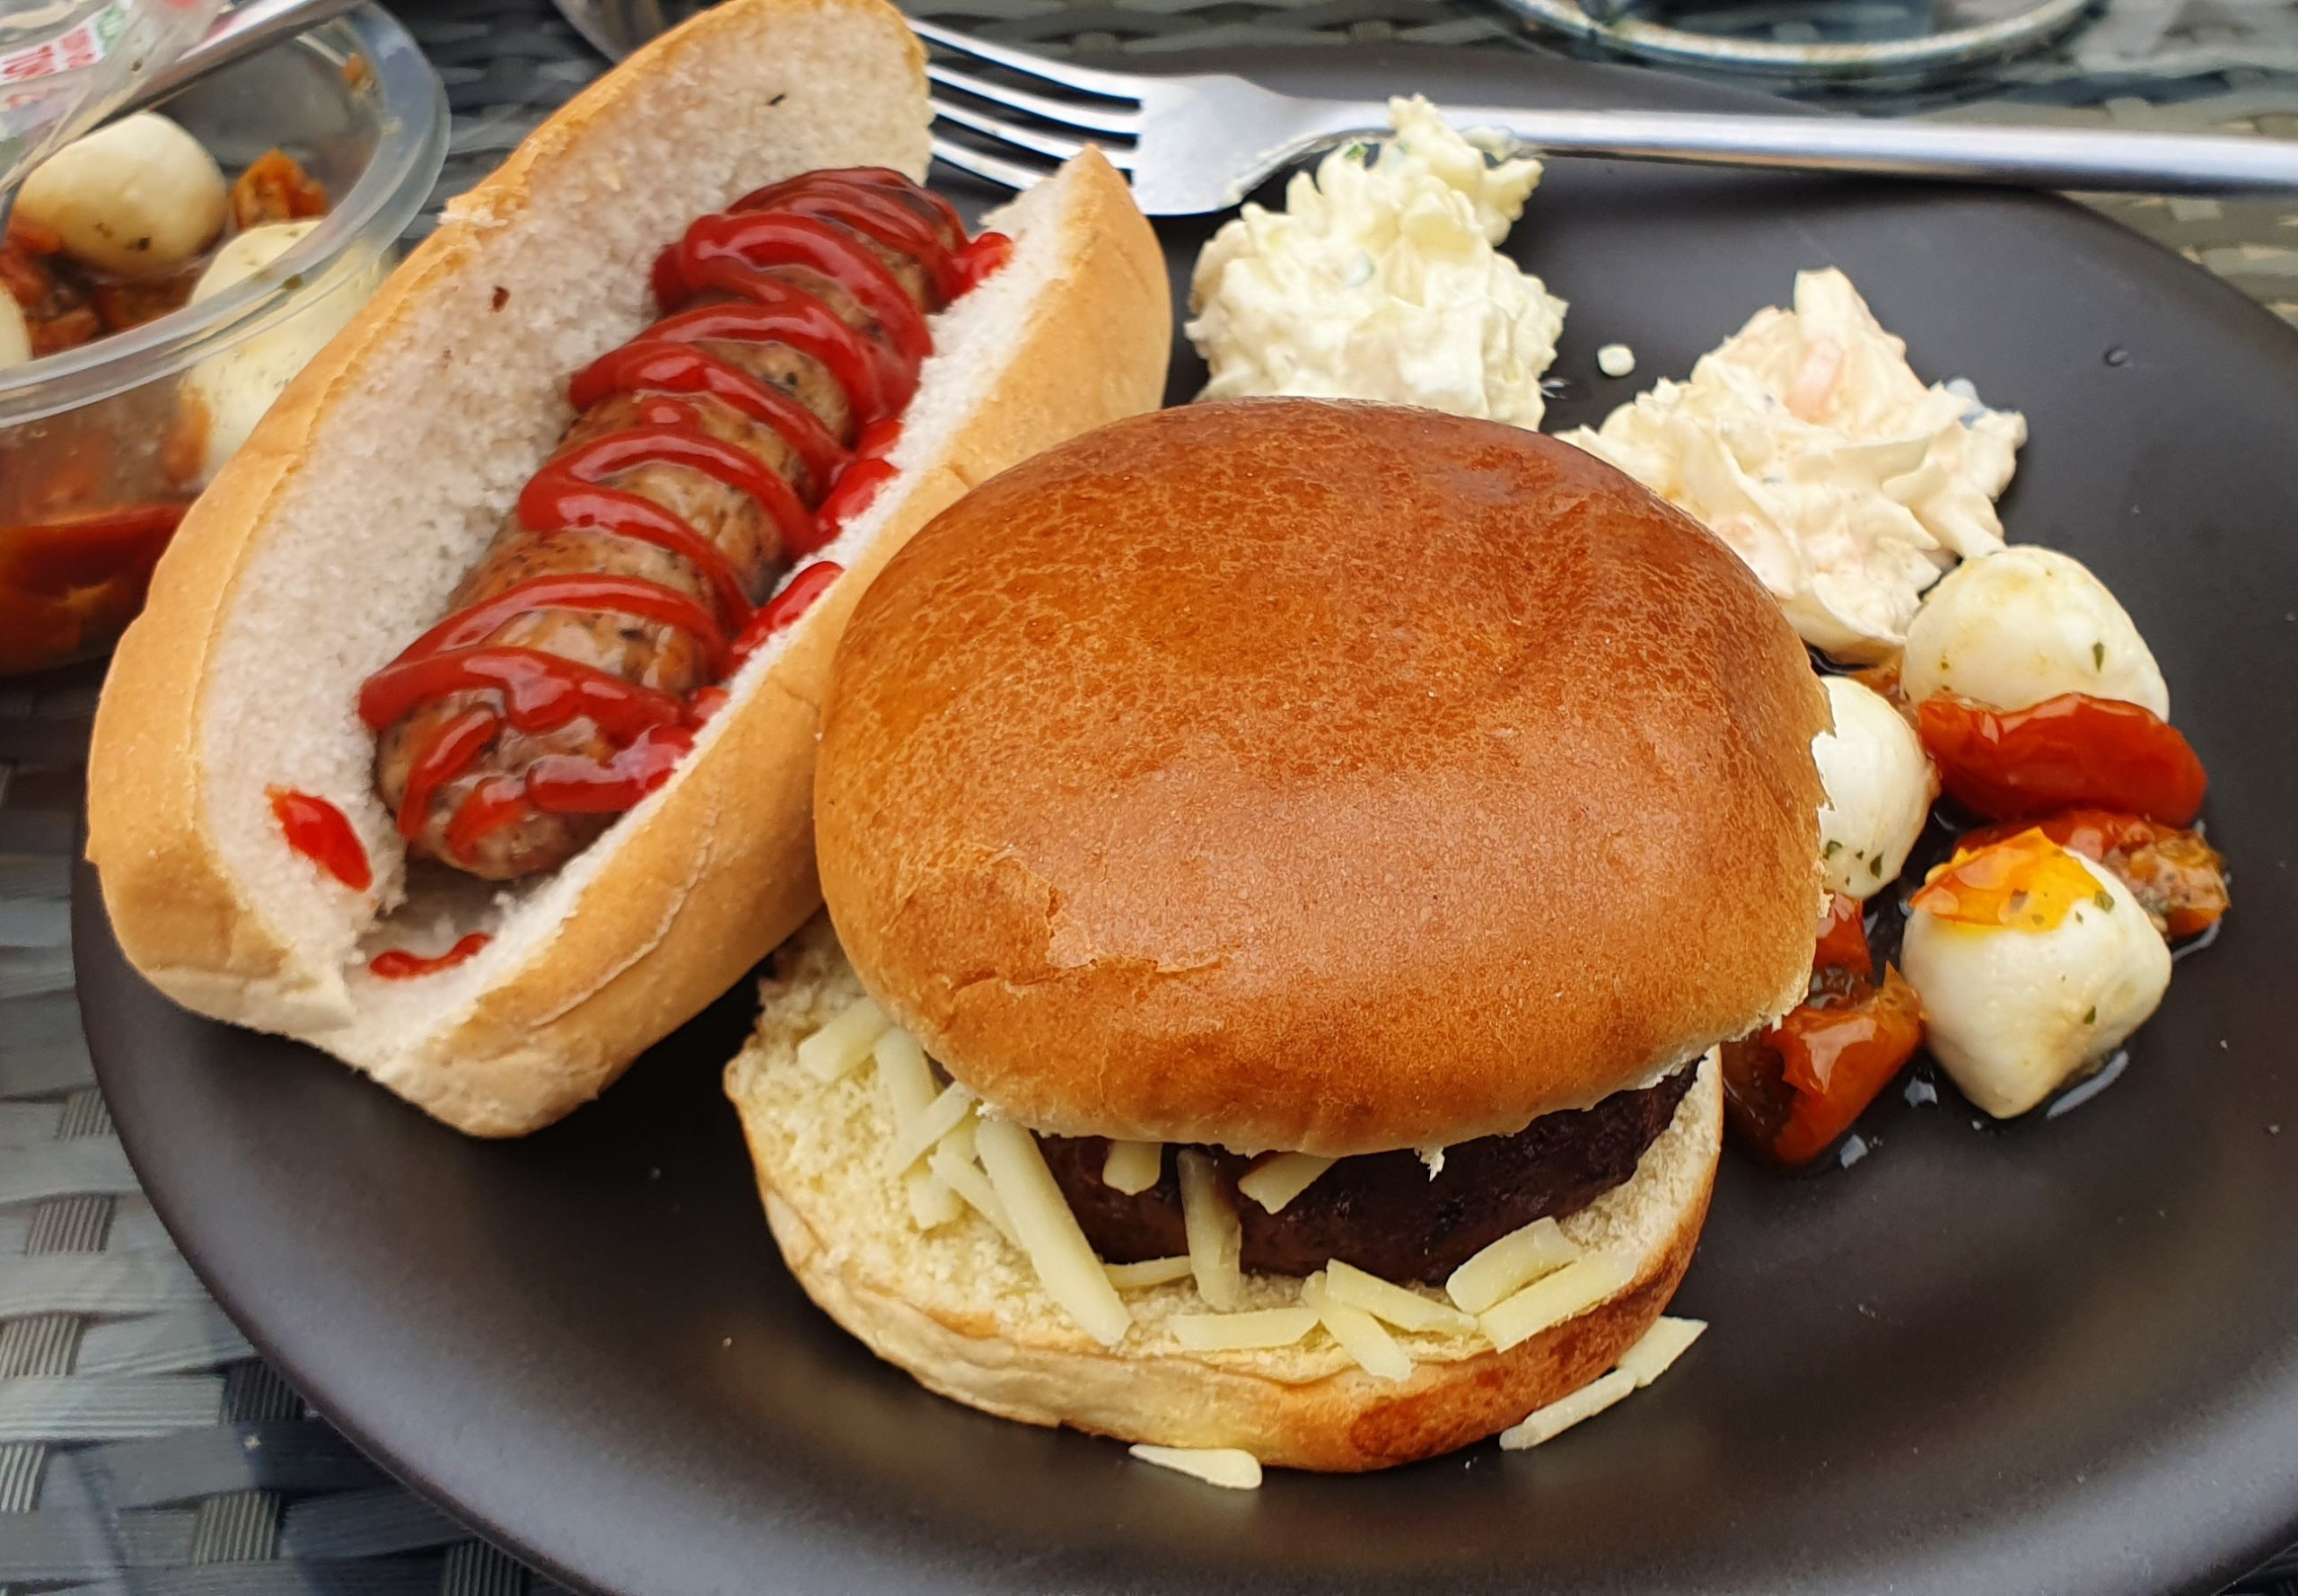 a cheeseburger and a hot dog on a black plate